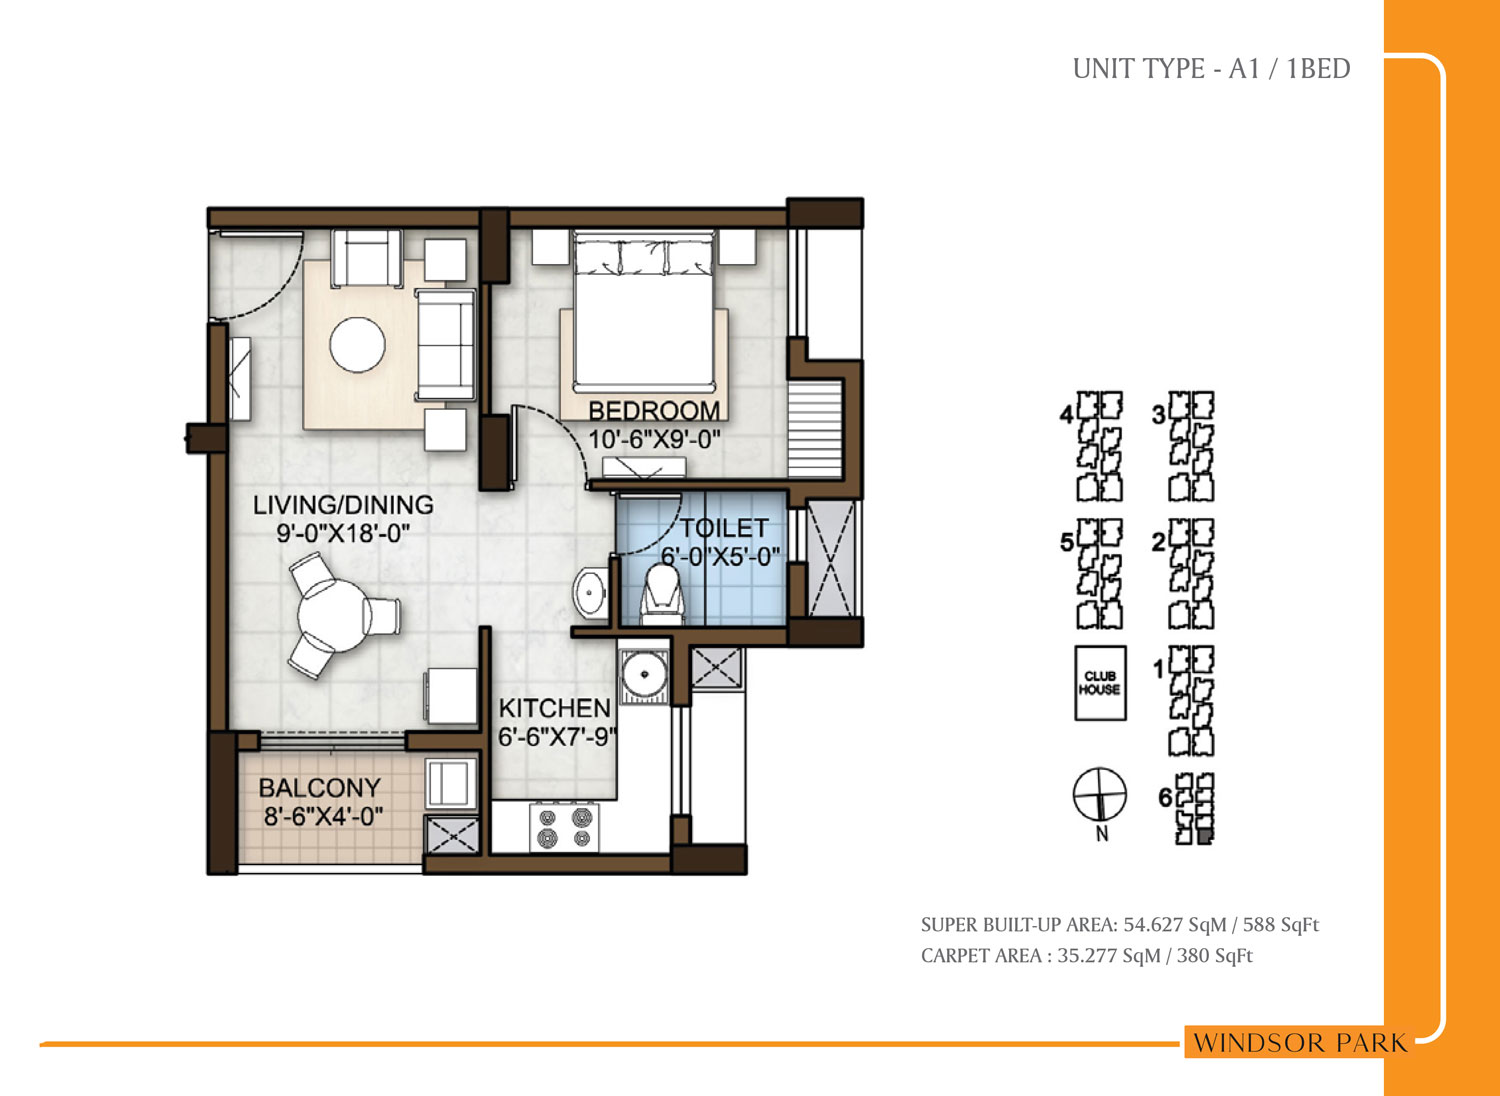 Type A1 - 588 Sq Ft